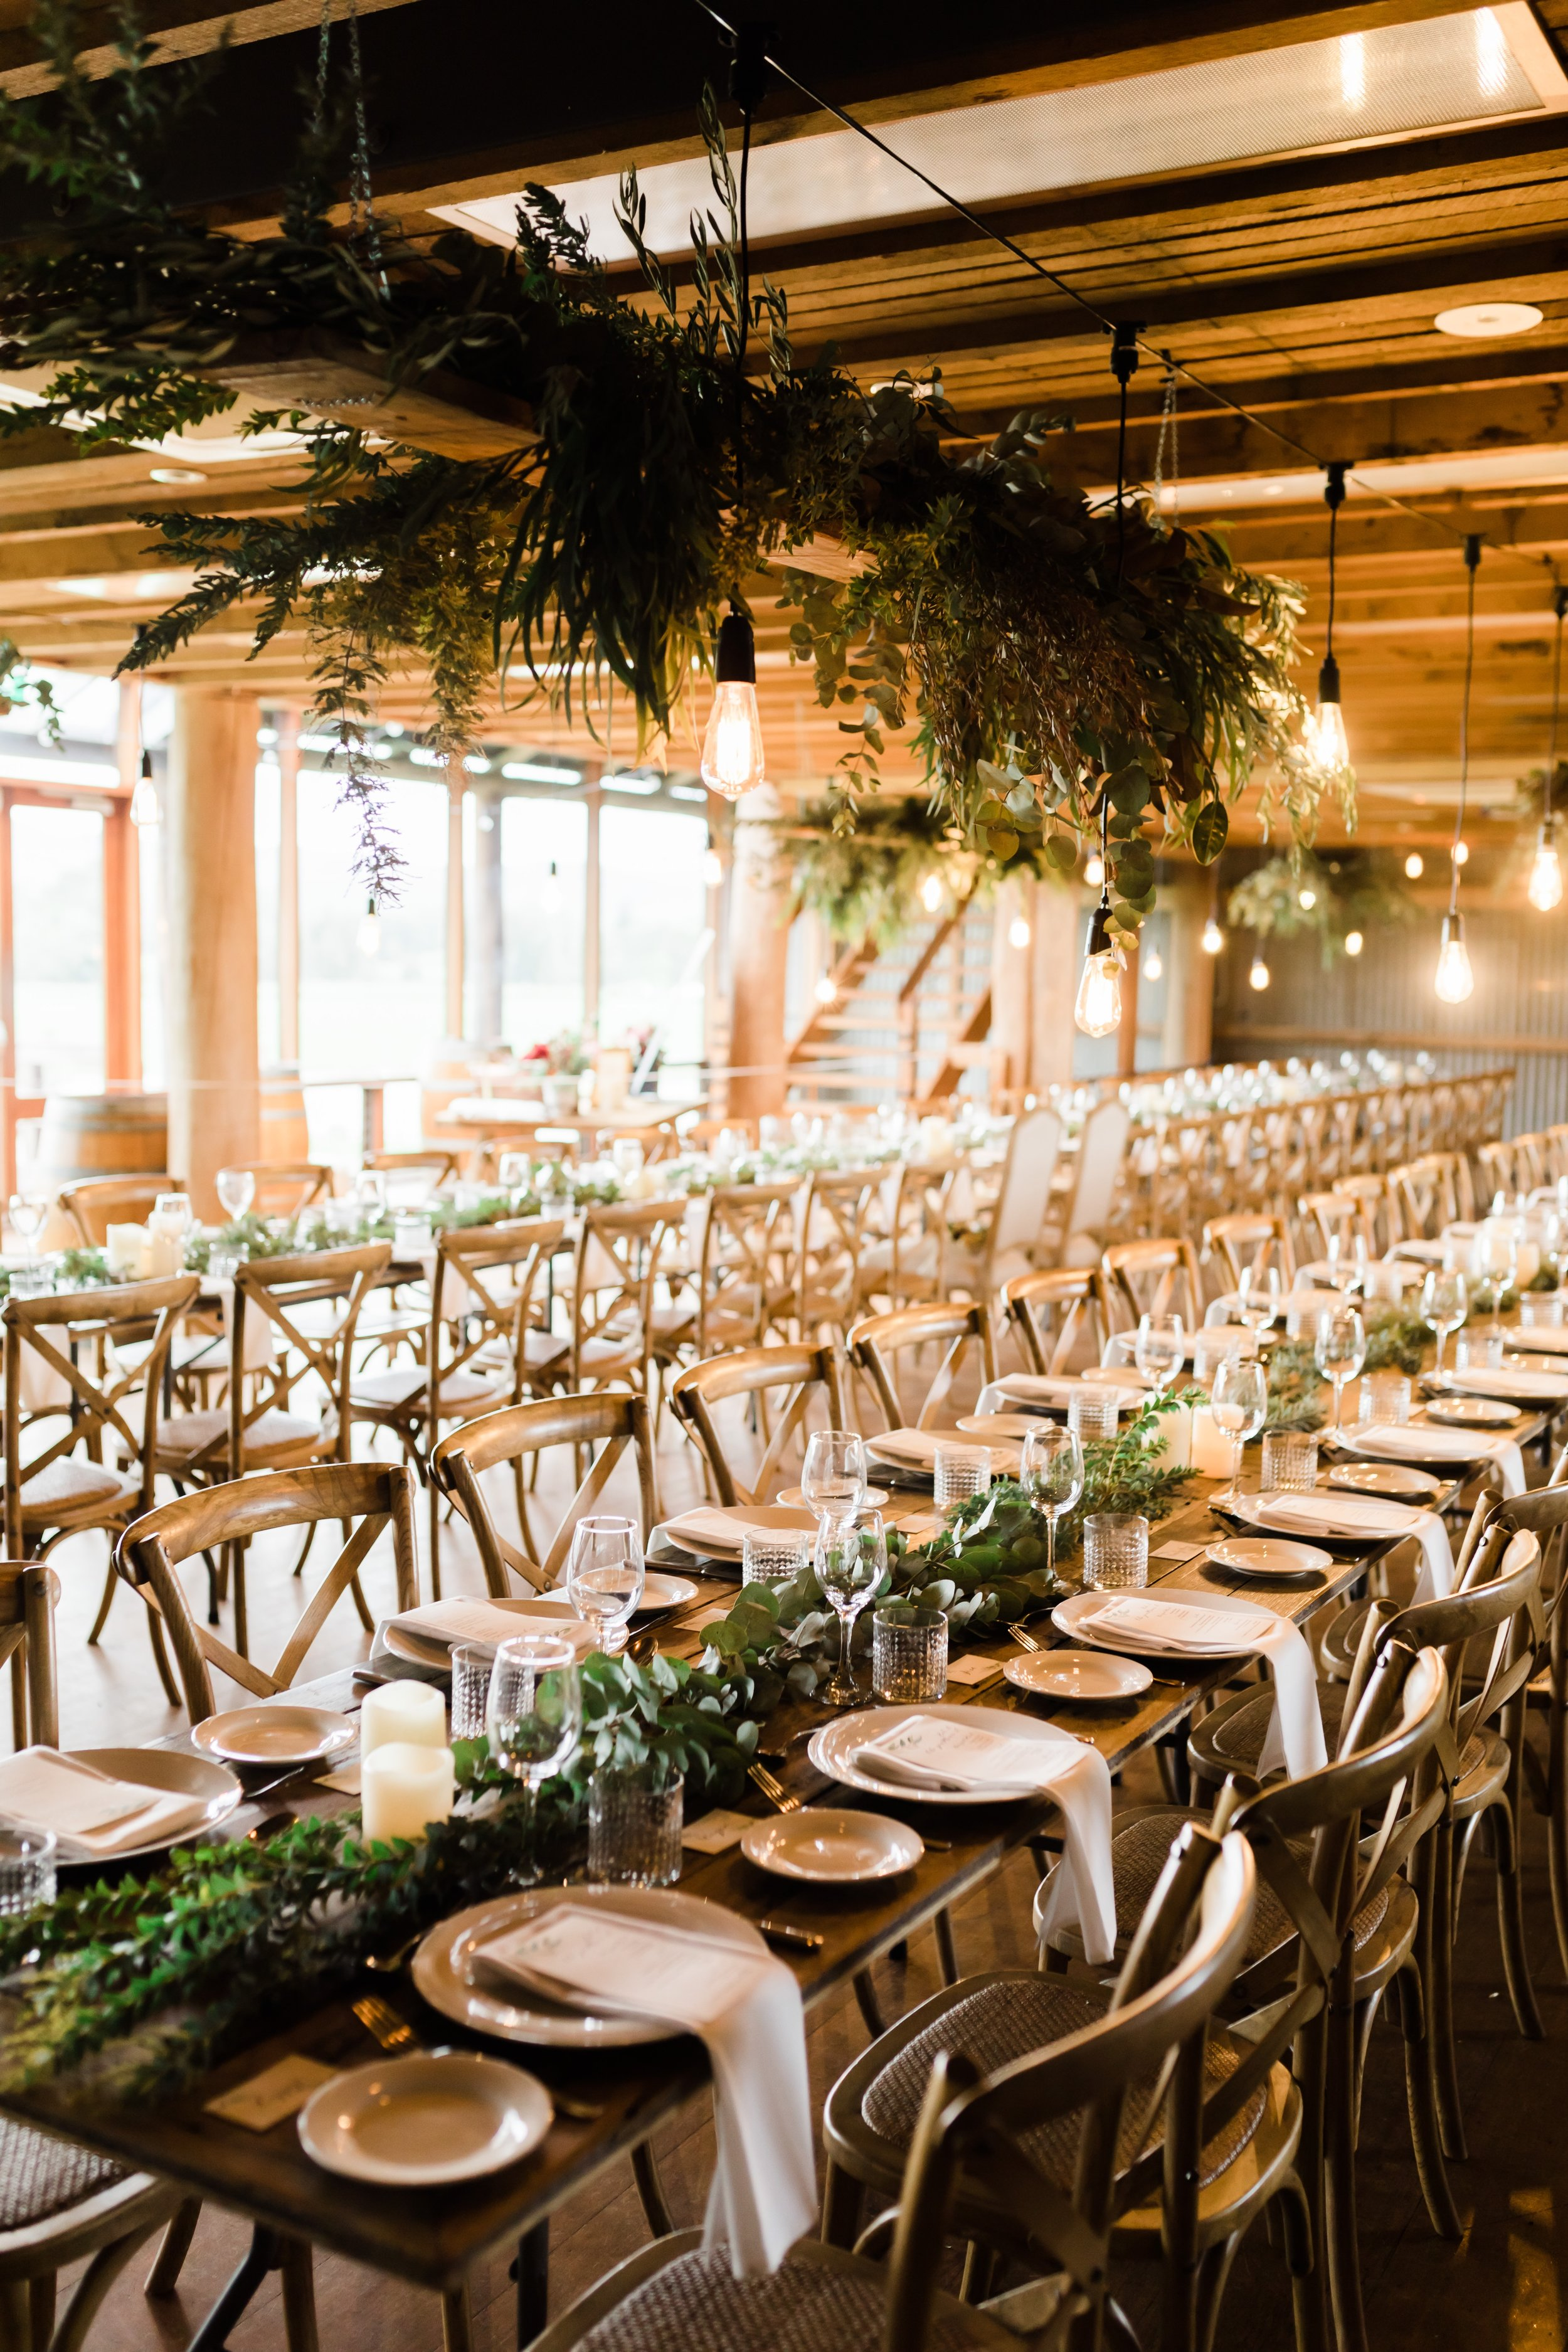 Venue Scouting   Whether you are having 20 or 2,000 guests, we can help you find the perfect venue for any event that works within your budget.